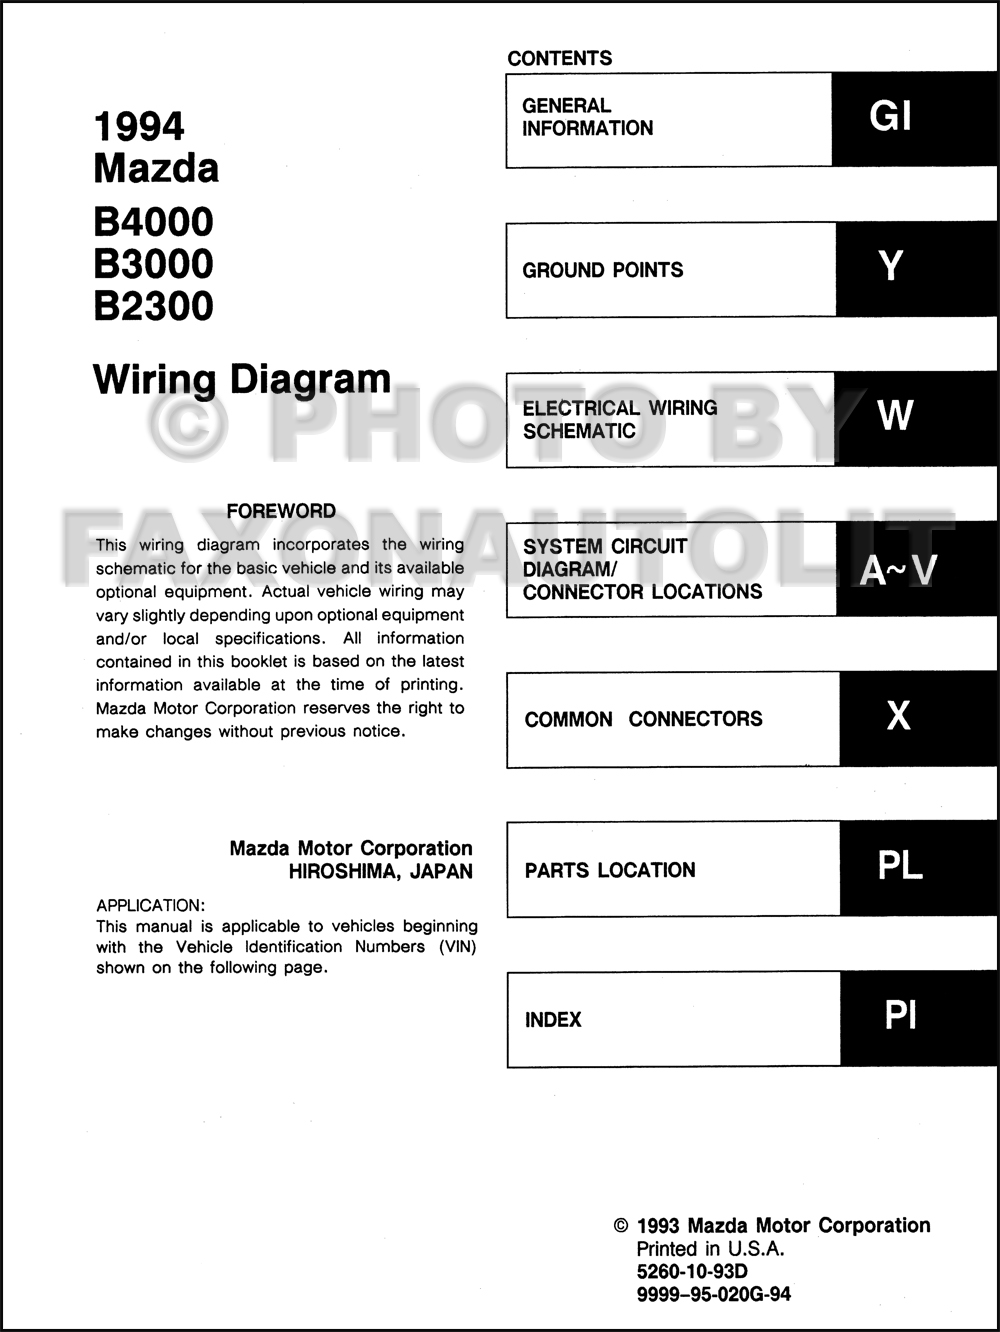 Mazda B4000 4x4 Wiring Diagram Free Image Wiring Diagram Engine